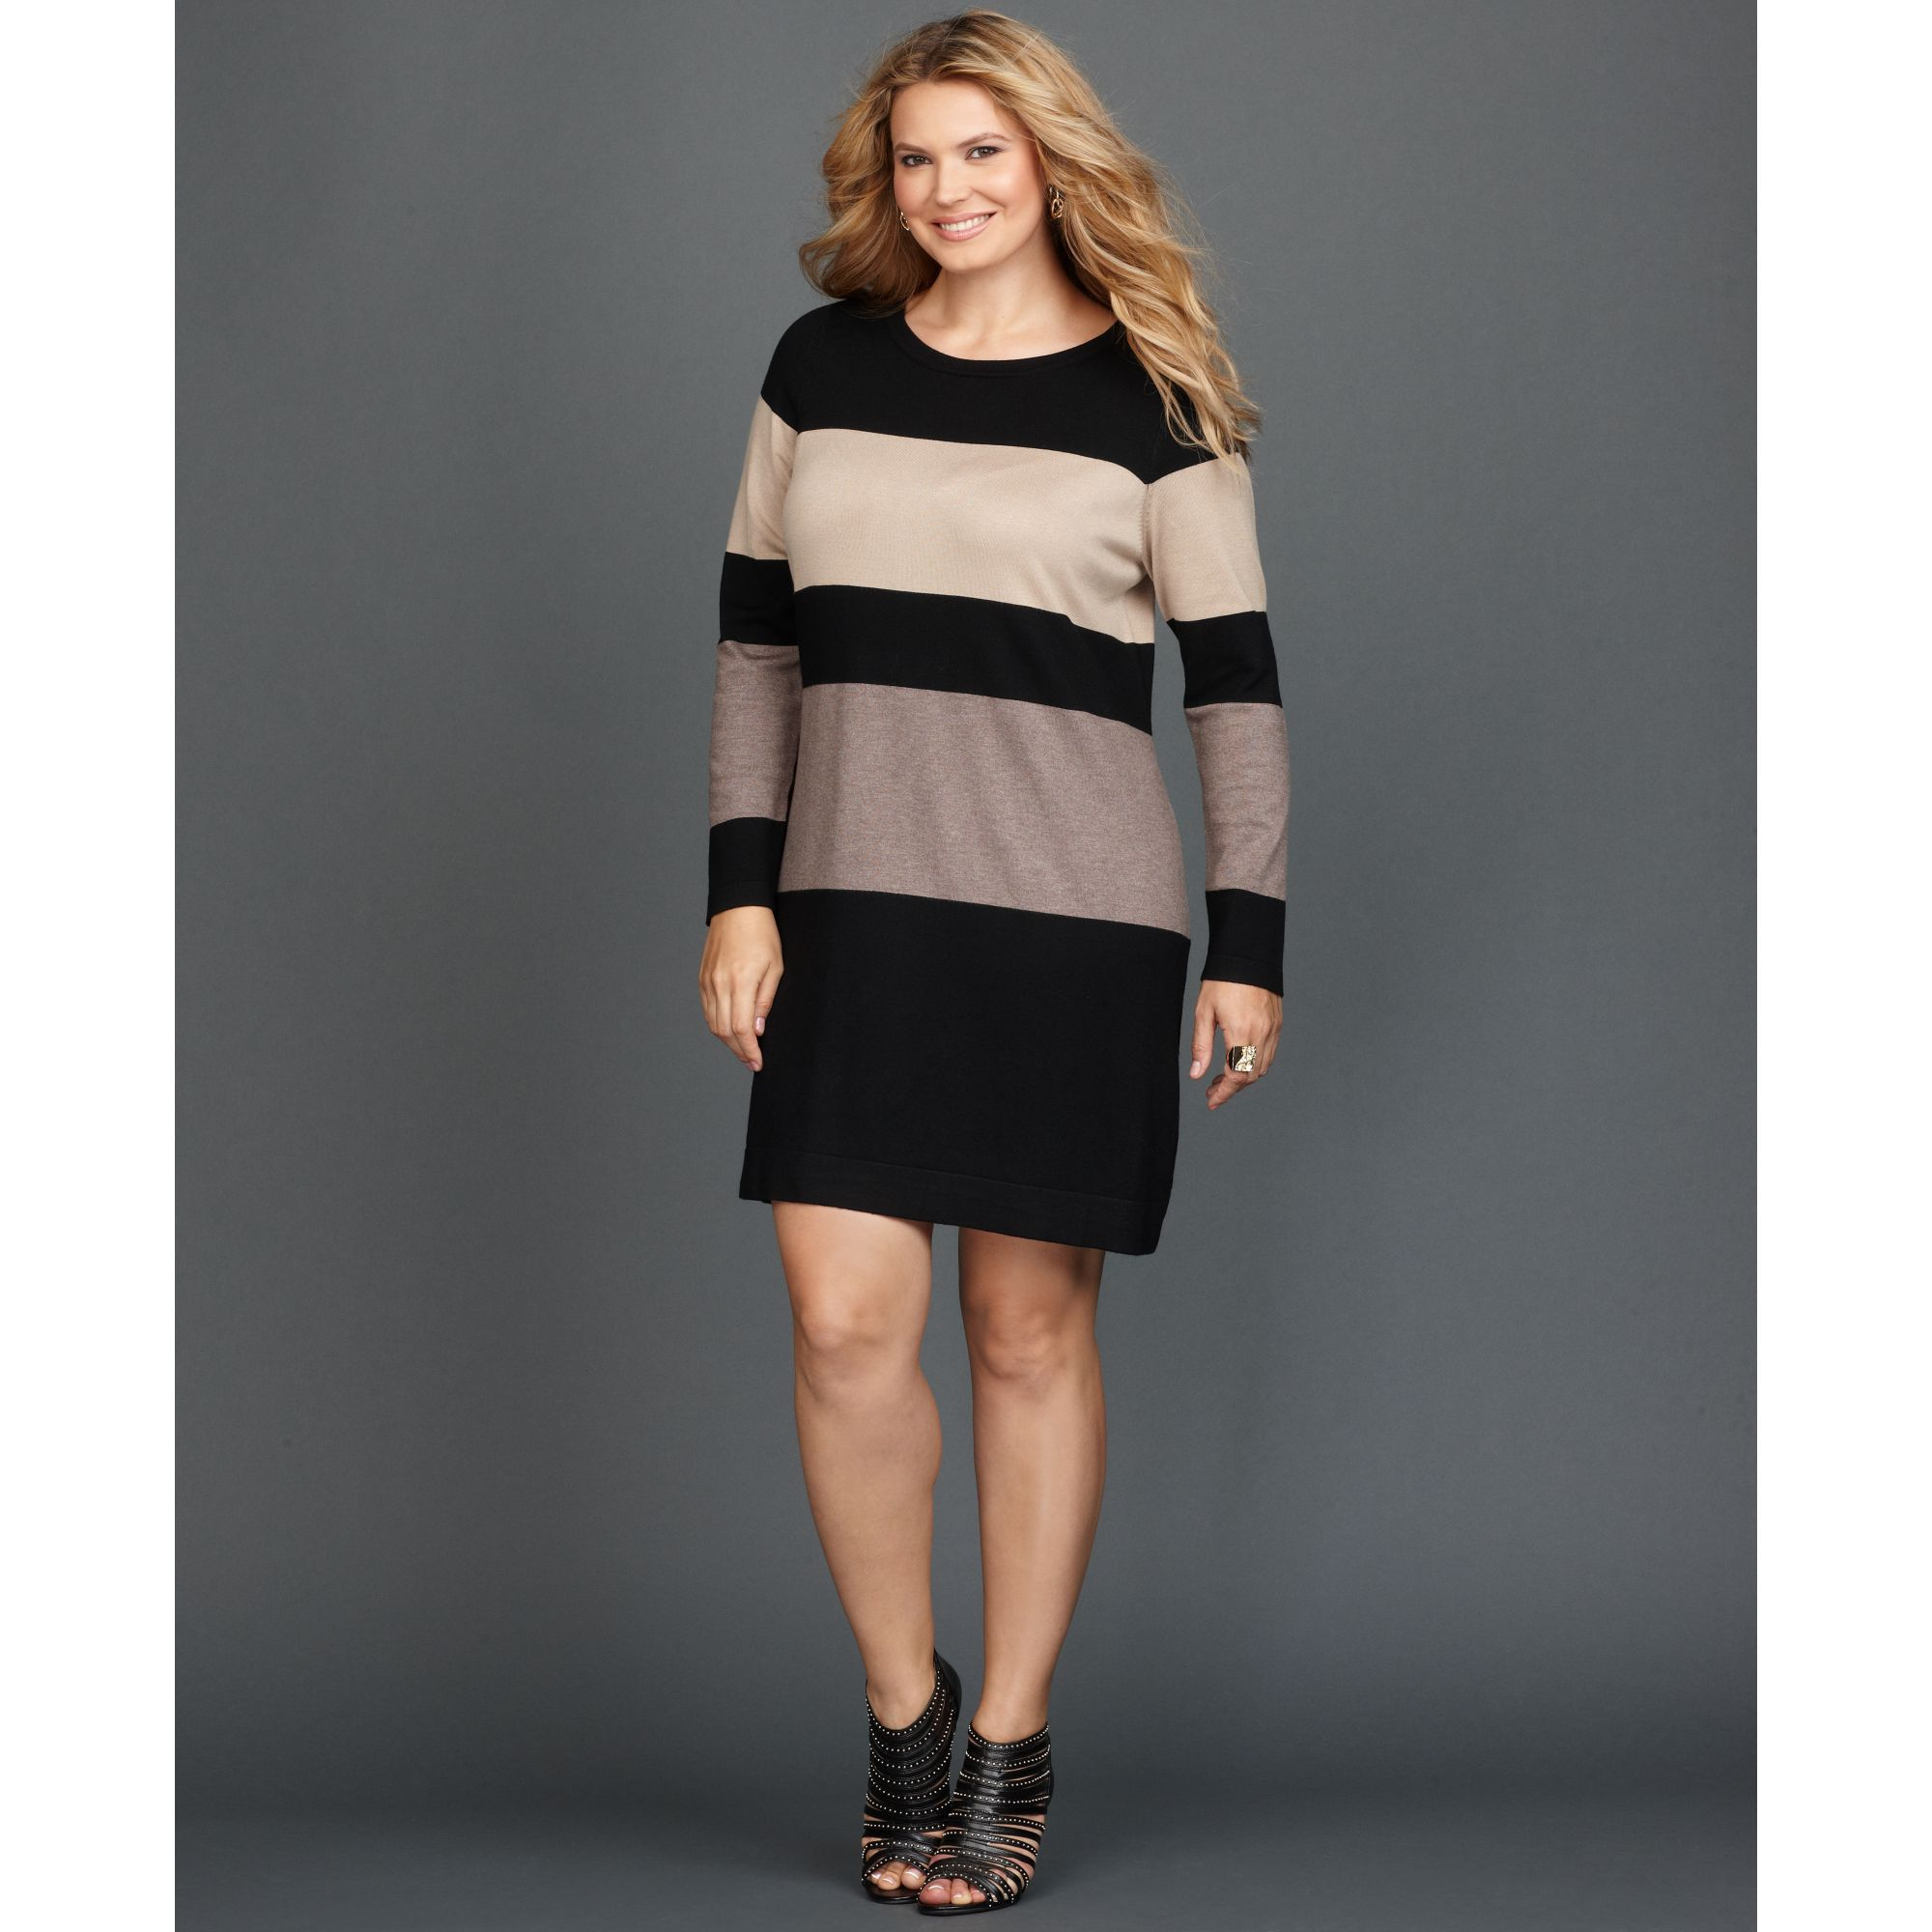 inc-international-concepts-black-plus-size-long-sleeve-colorblock-sweater-dress-product-1-17134809-0-917955075-normal.jpeg